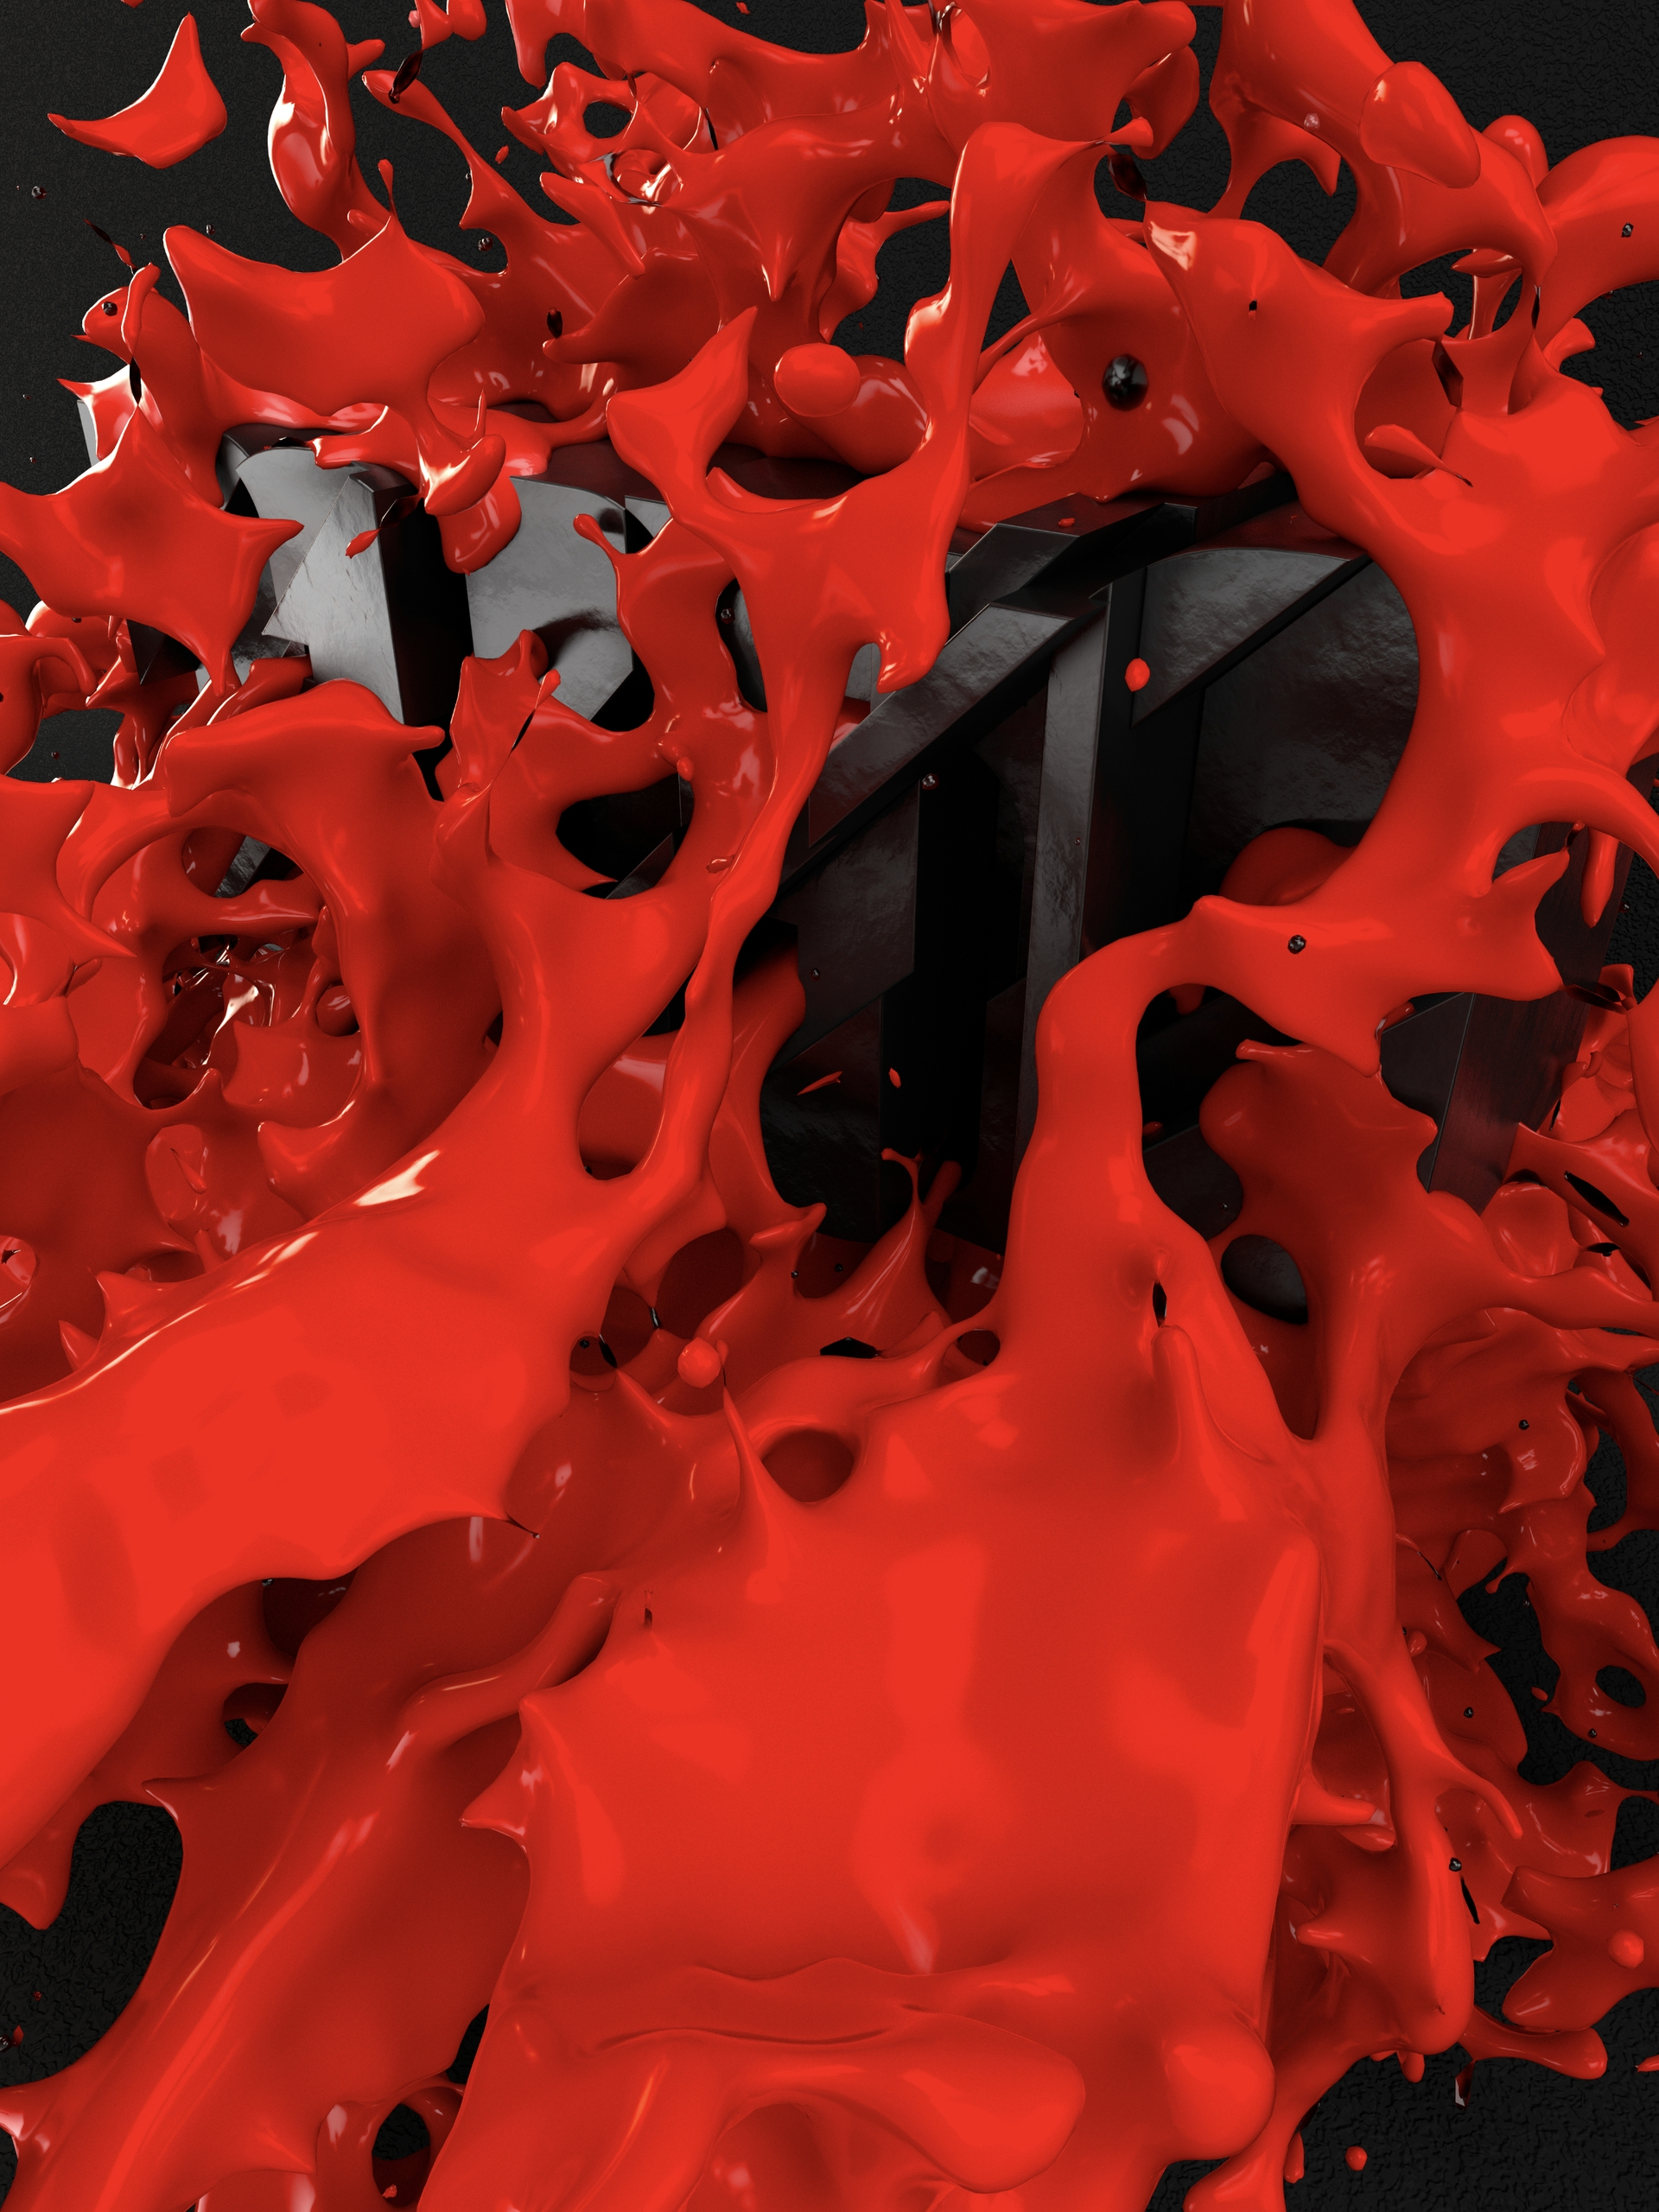 cinema4d, c4d, art, design, Venezuela - p3p510 | ello